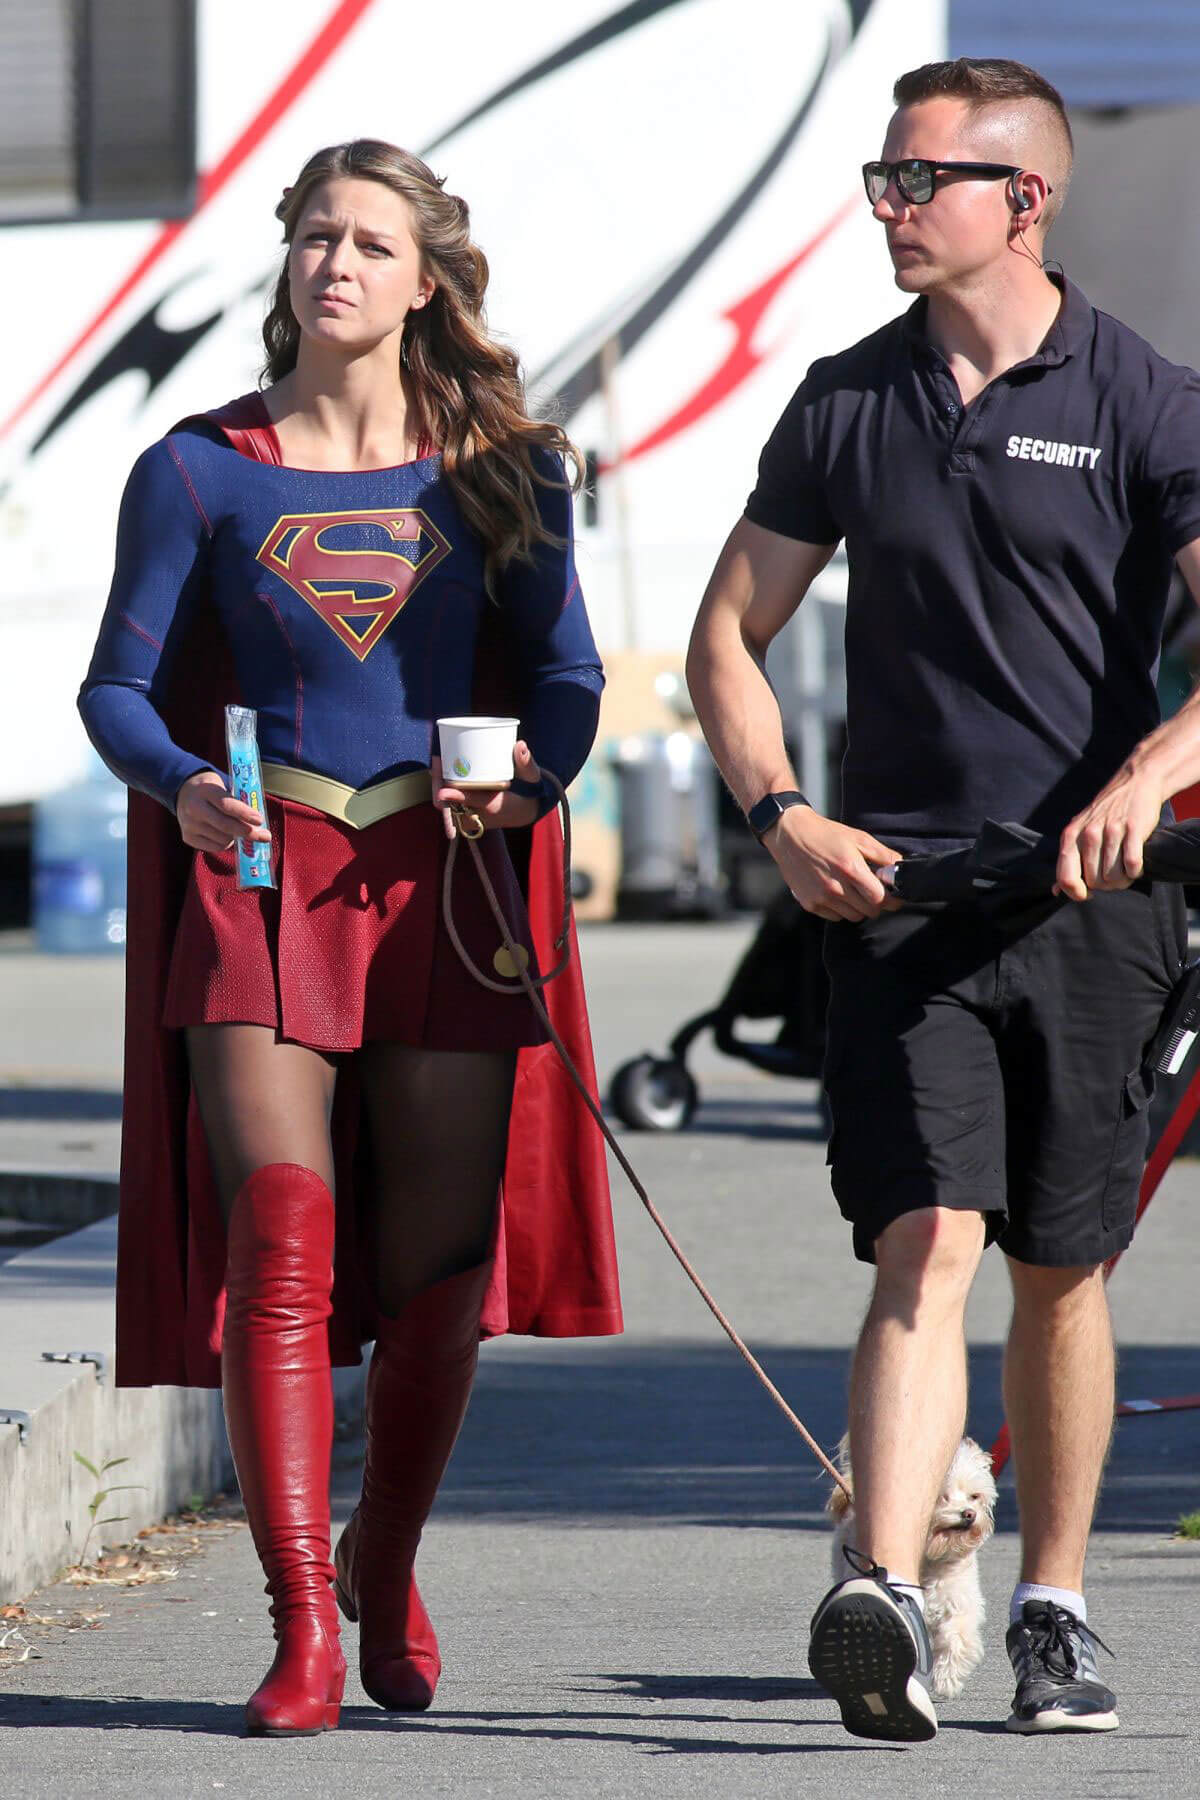 Melissa Benoist on the Set of Supergirl in Vancouver